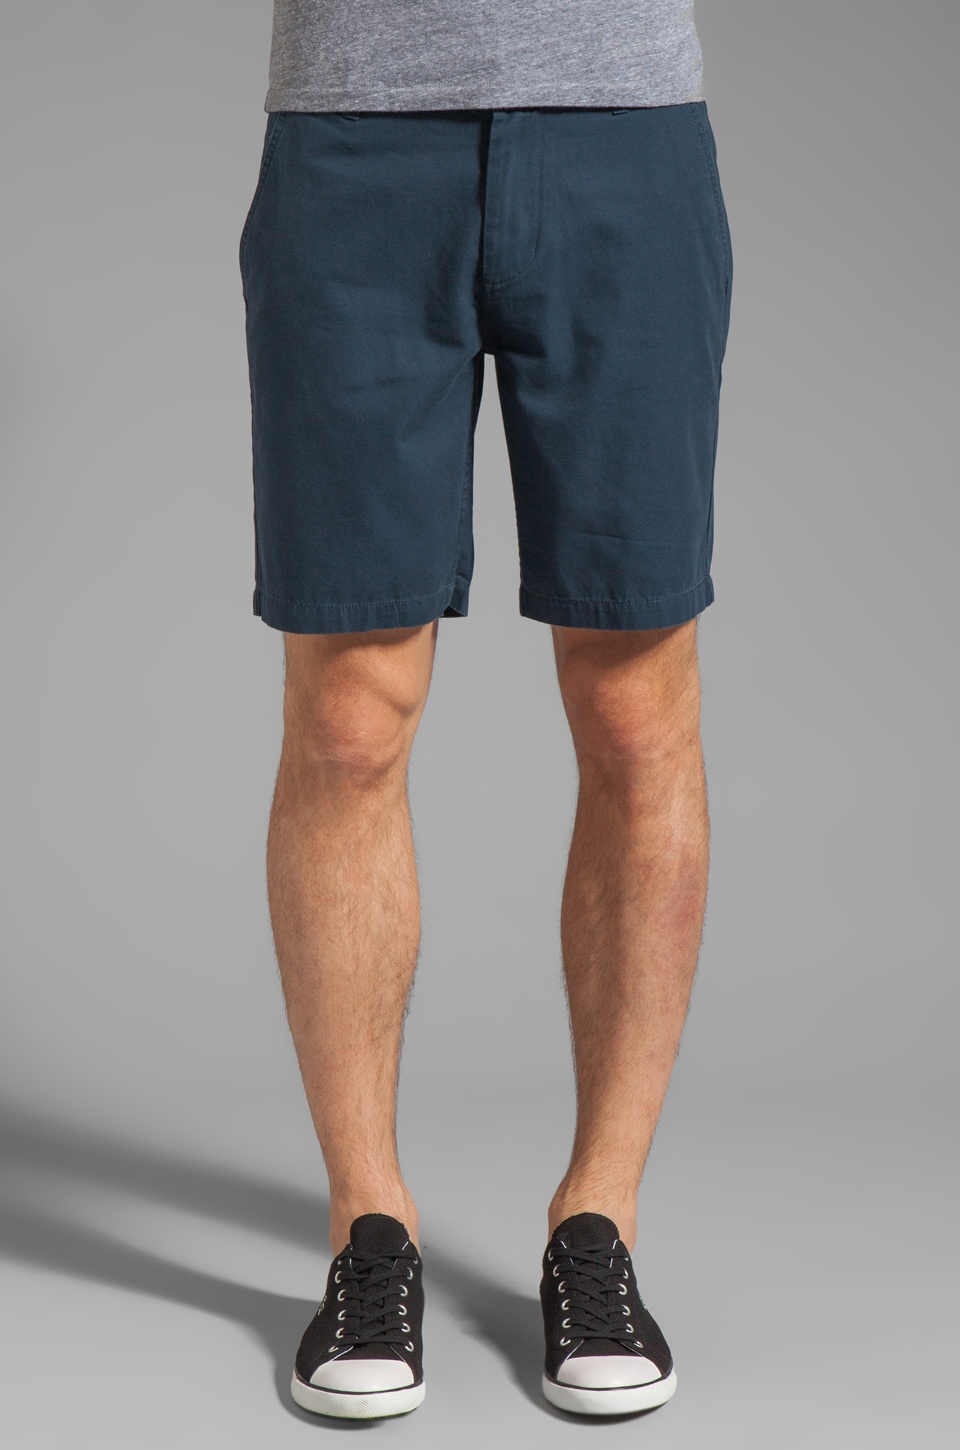 Obey Angler Short in Mood Indigo